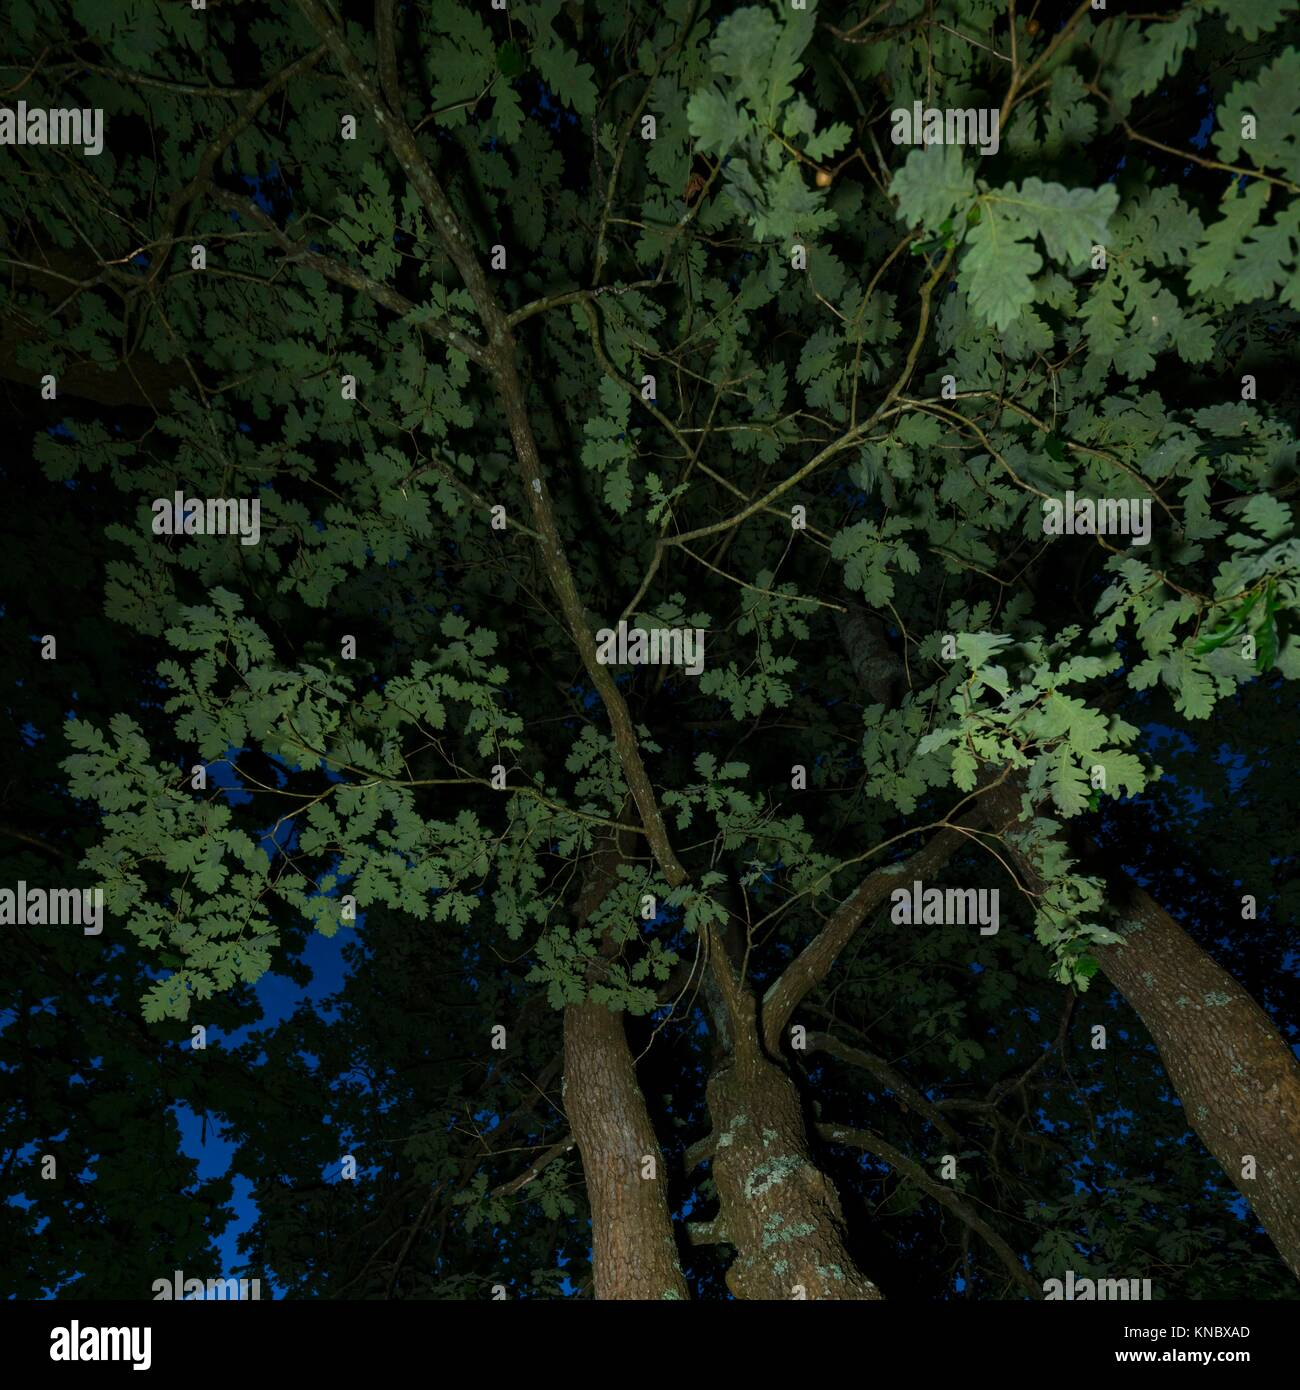 Oak at night, Liendo Valley, MOC Montaña Oriental Costera, NATURA 2000, Cantabria, Spain, Europe. - Stock Image